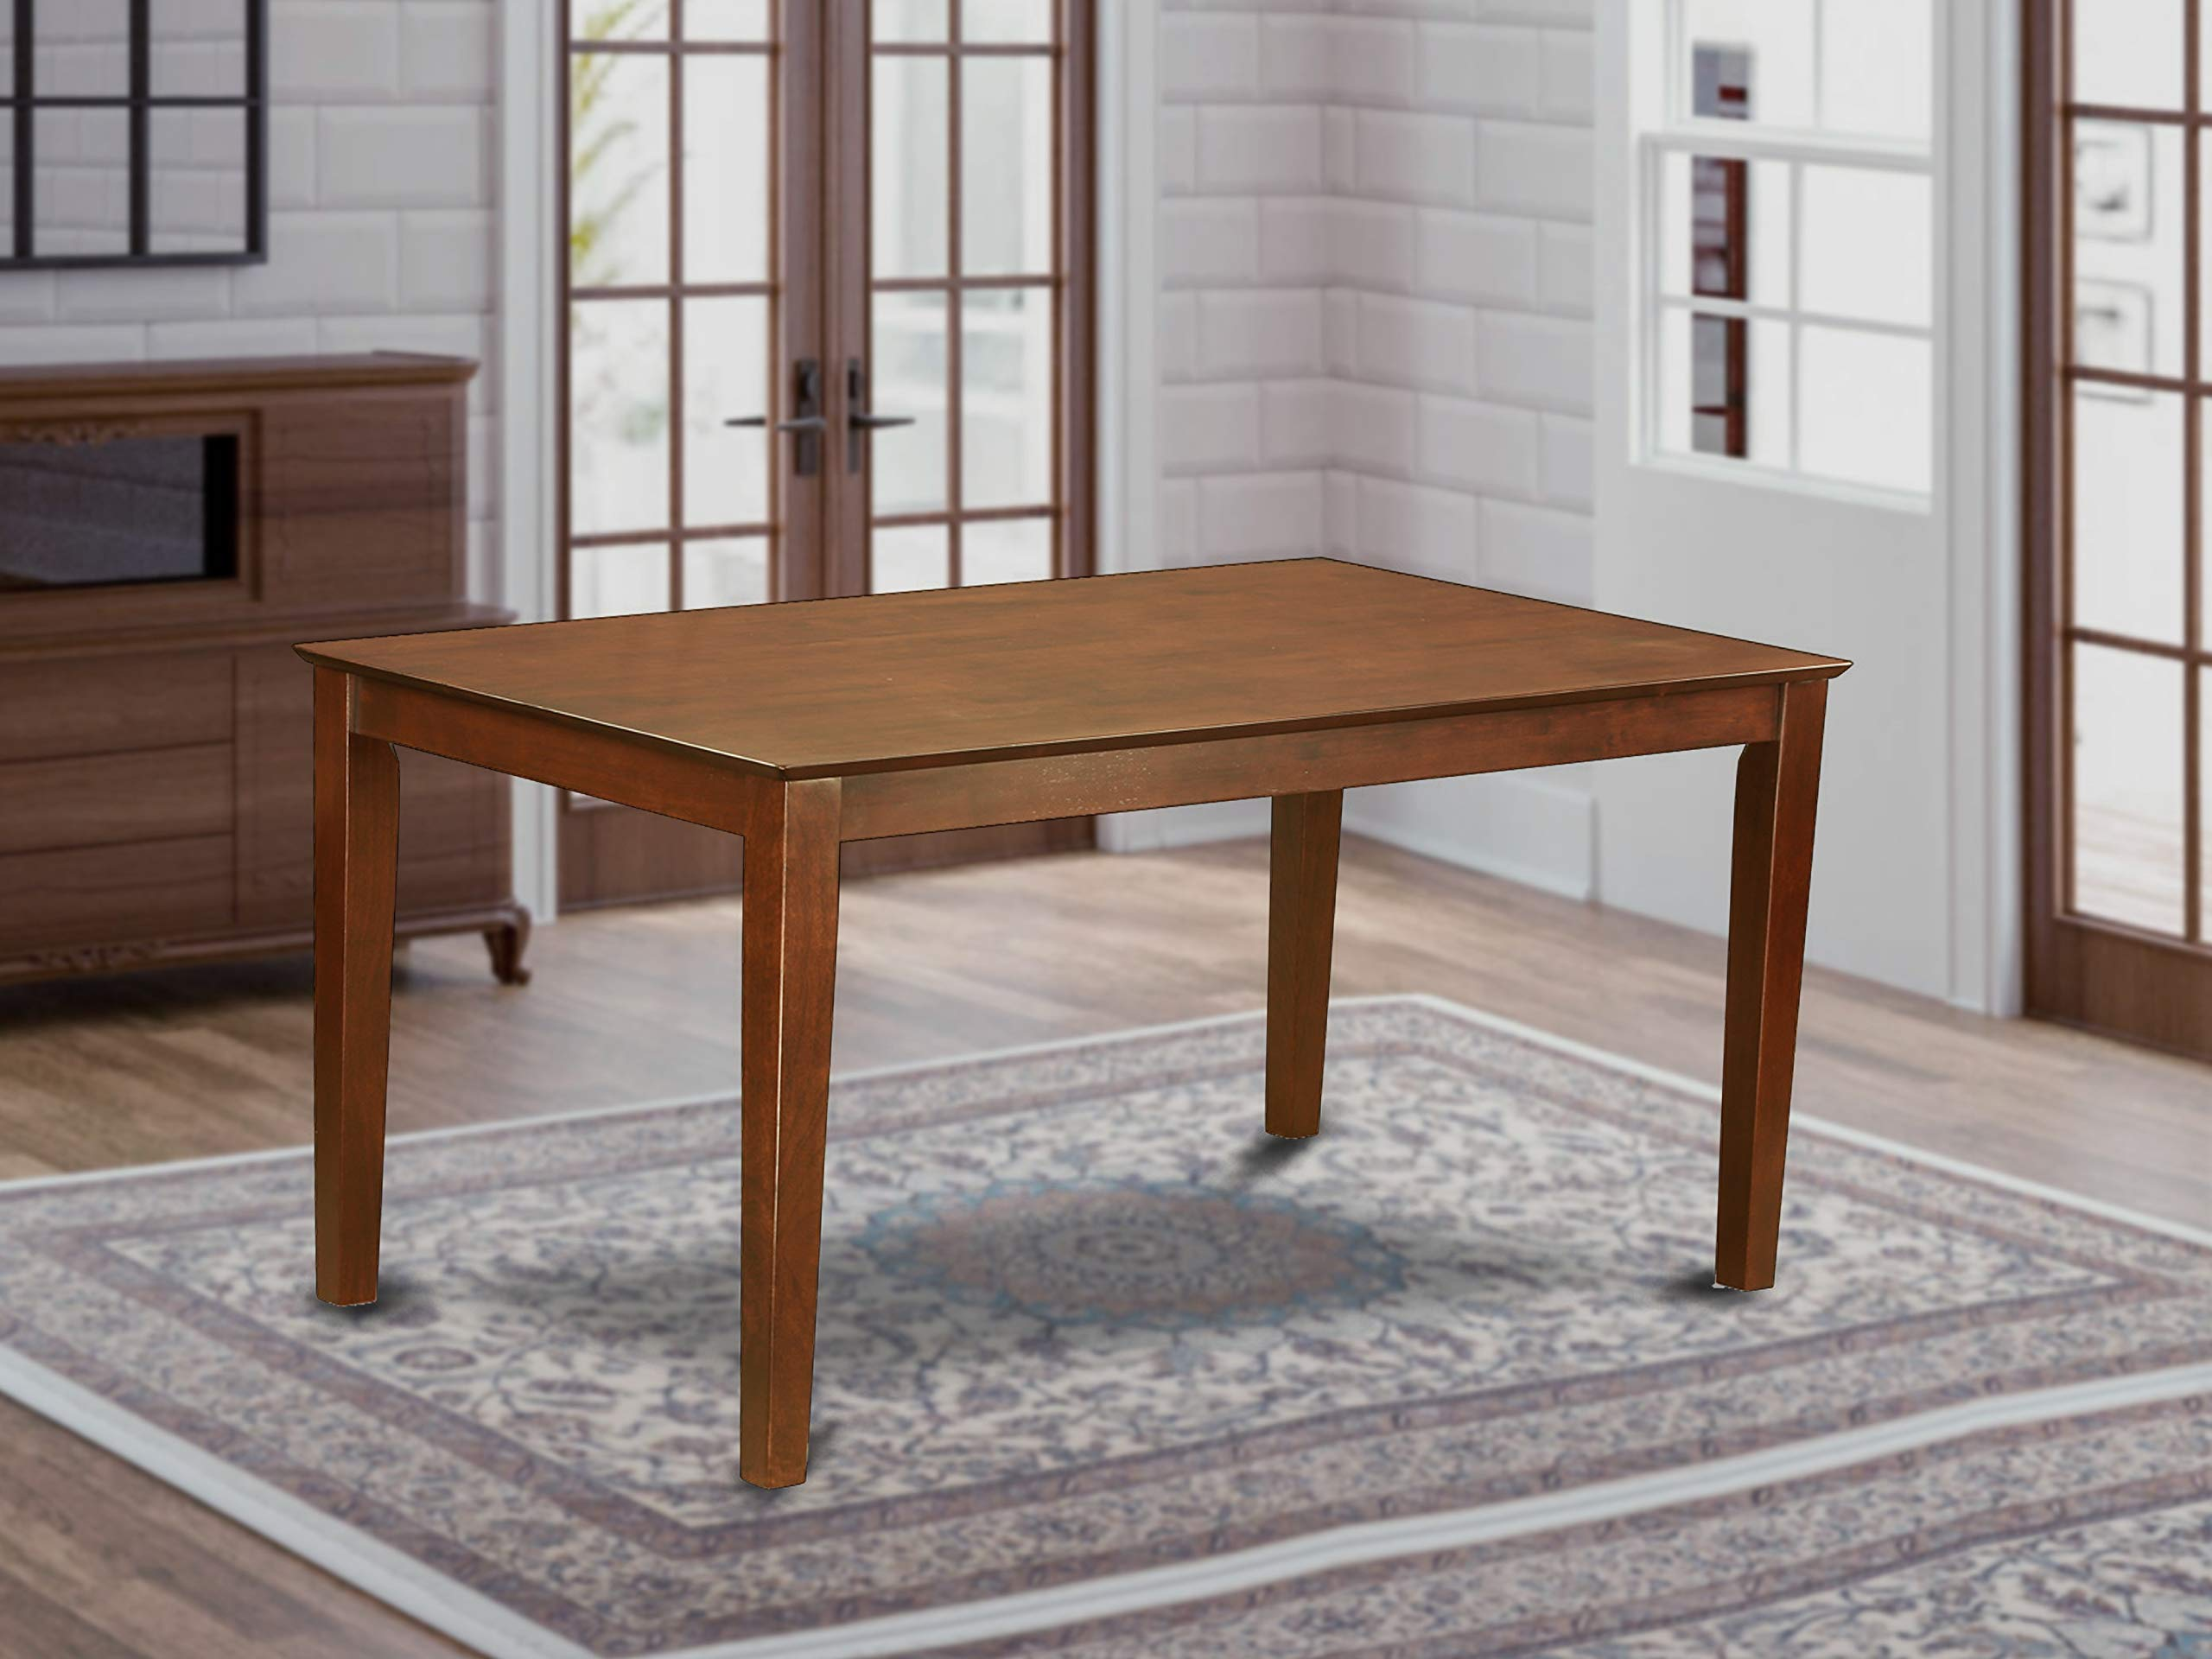 East West Furniture CAT-MAH-S Rectangular Dining Table with Solid Wood Top, 36-Inch by 60-Inch by East West Furniture